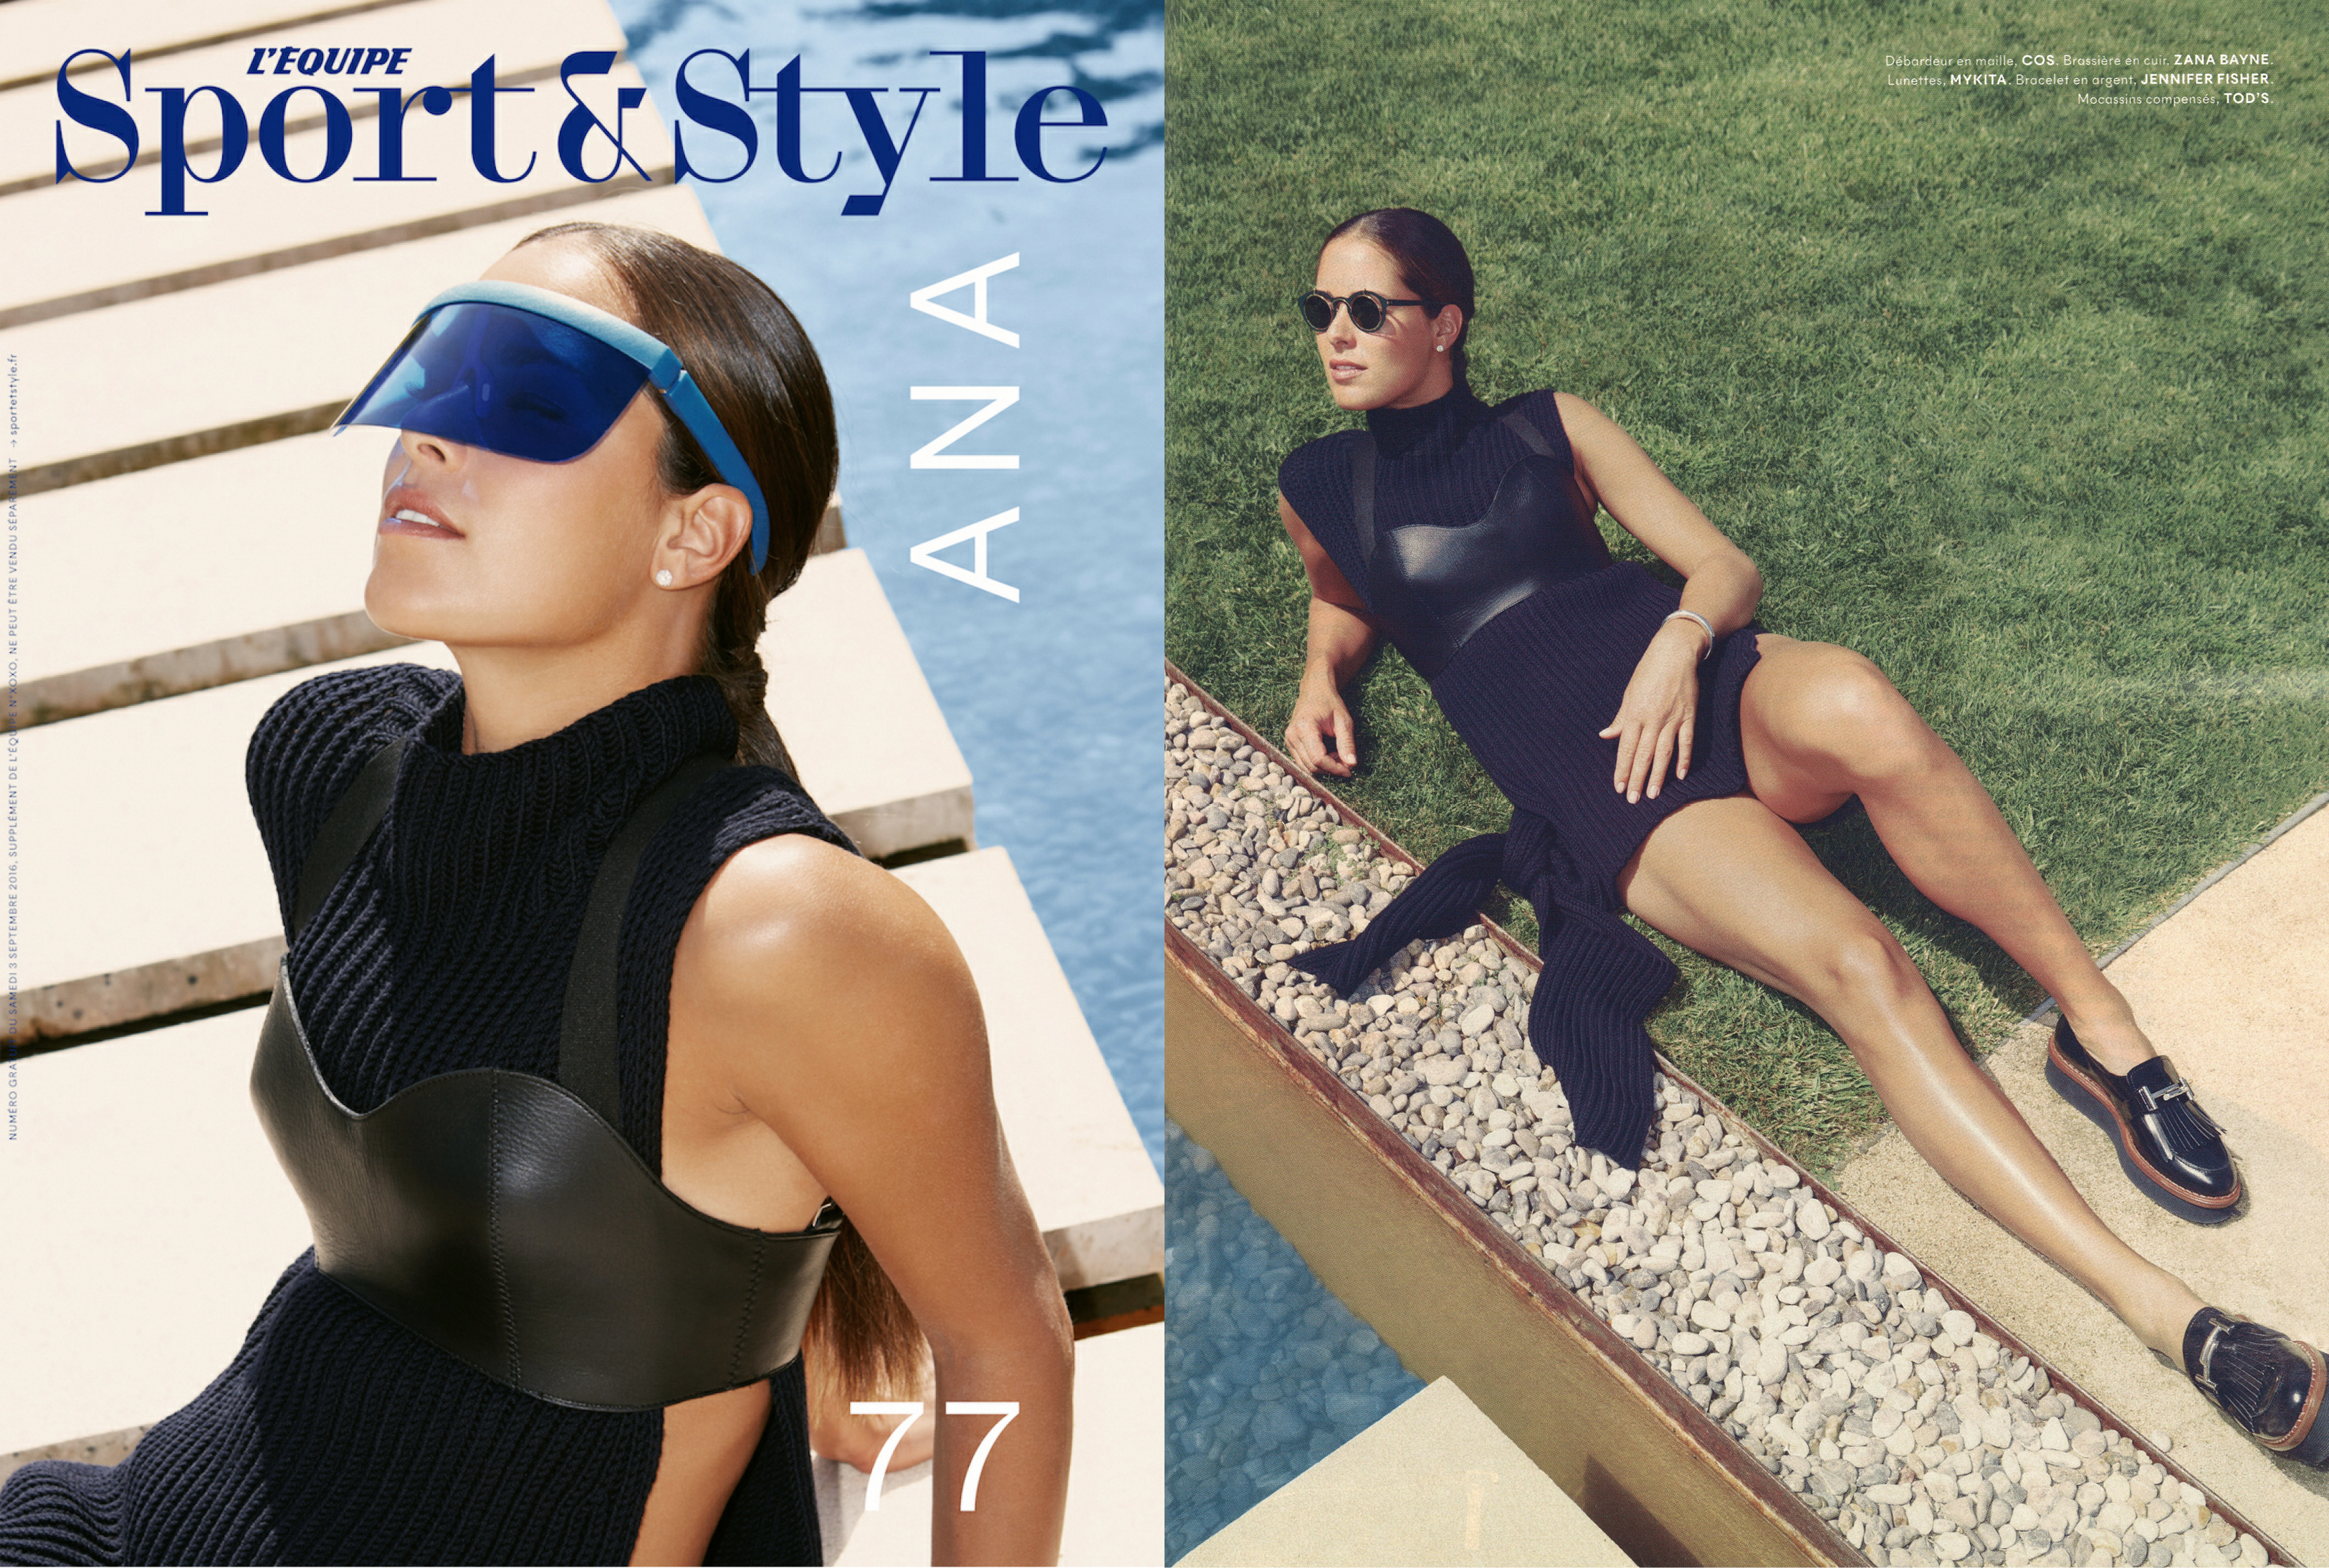 MYKITA & BERNHARD WILLHELM/MYKITA / DAMIR DOMA sunglasses featured in L'Equipe Sport&Style France